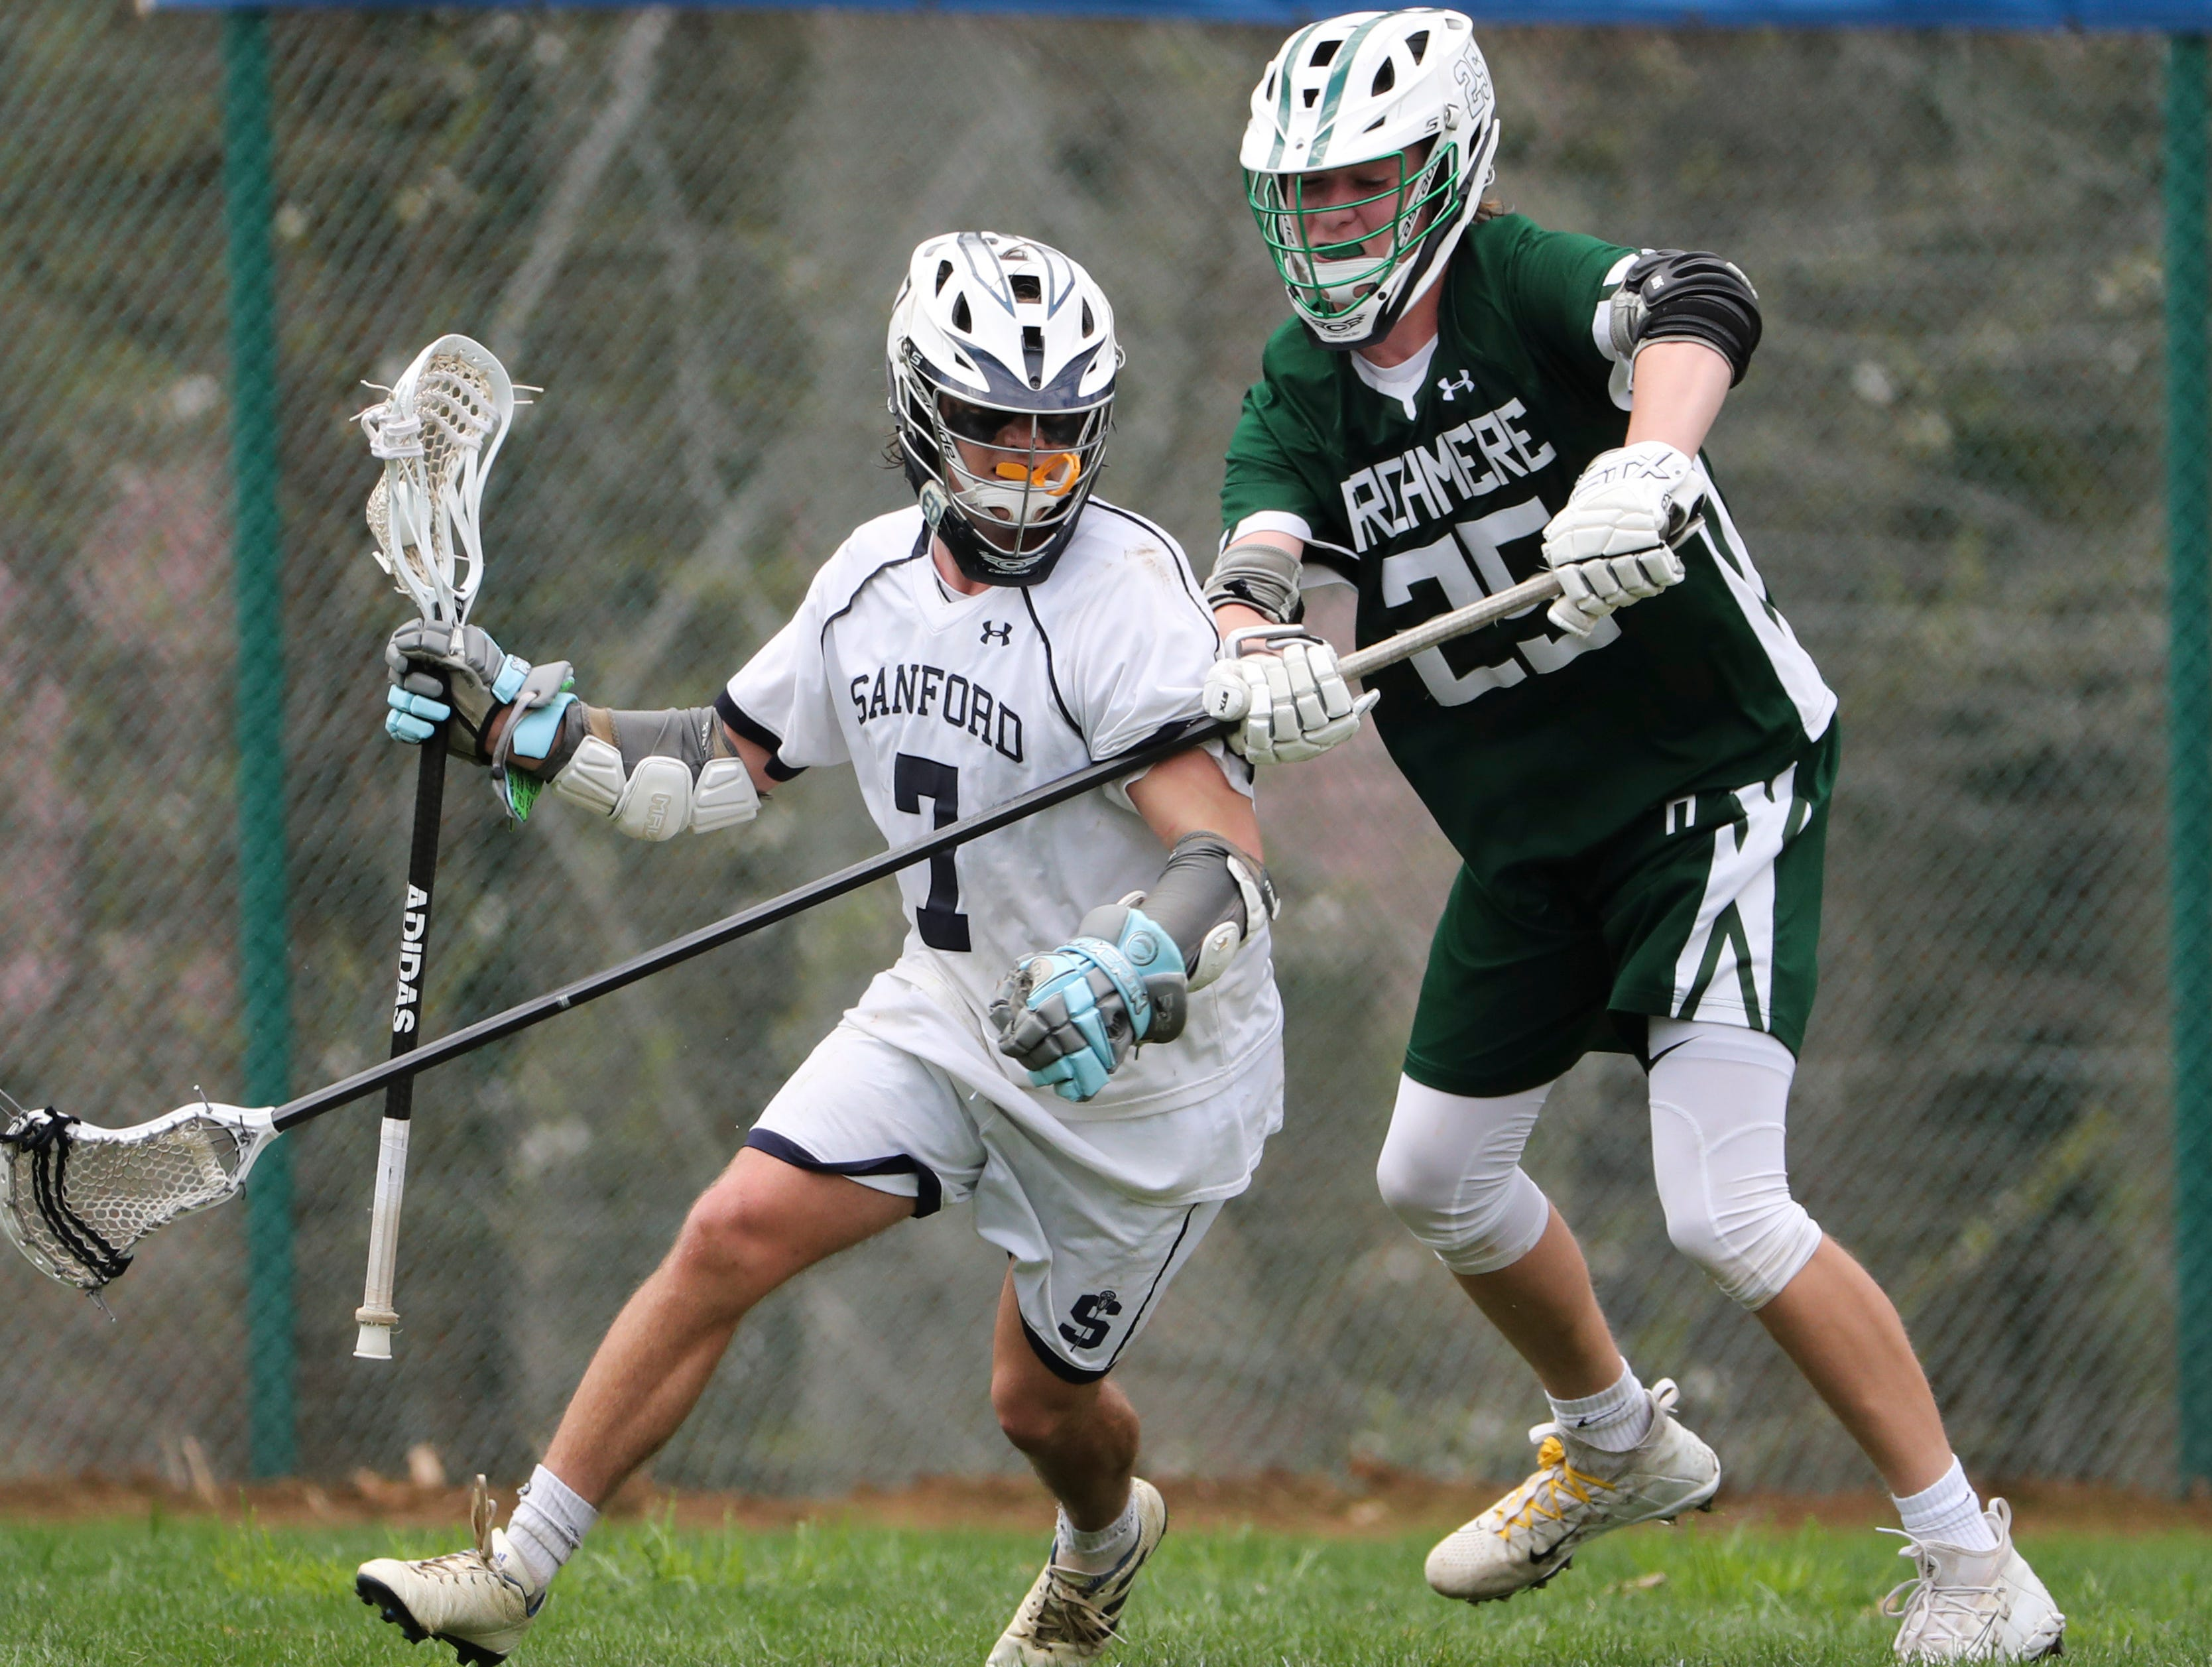 Sanford's Tommy Bloom is defended by Archmere's Nathan Yanick in the second half of Sanford's 12-10 win Saturday.